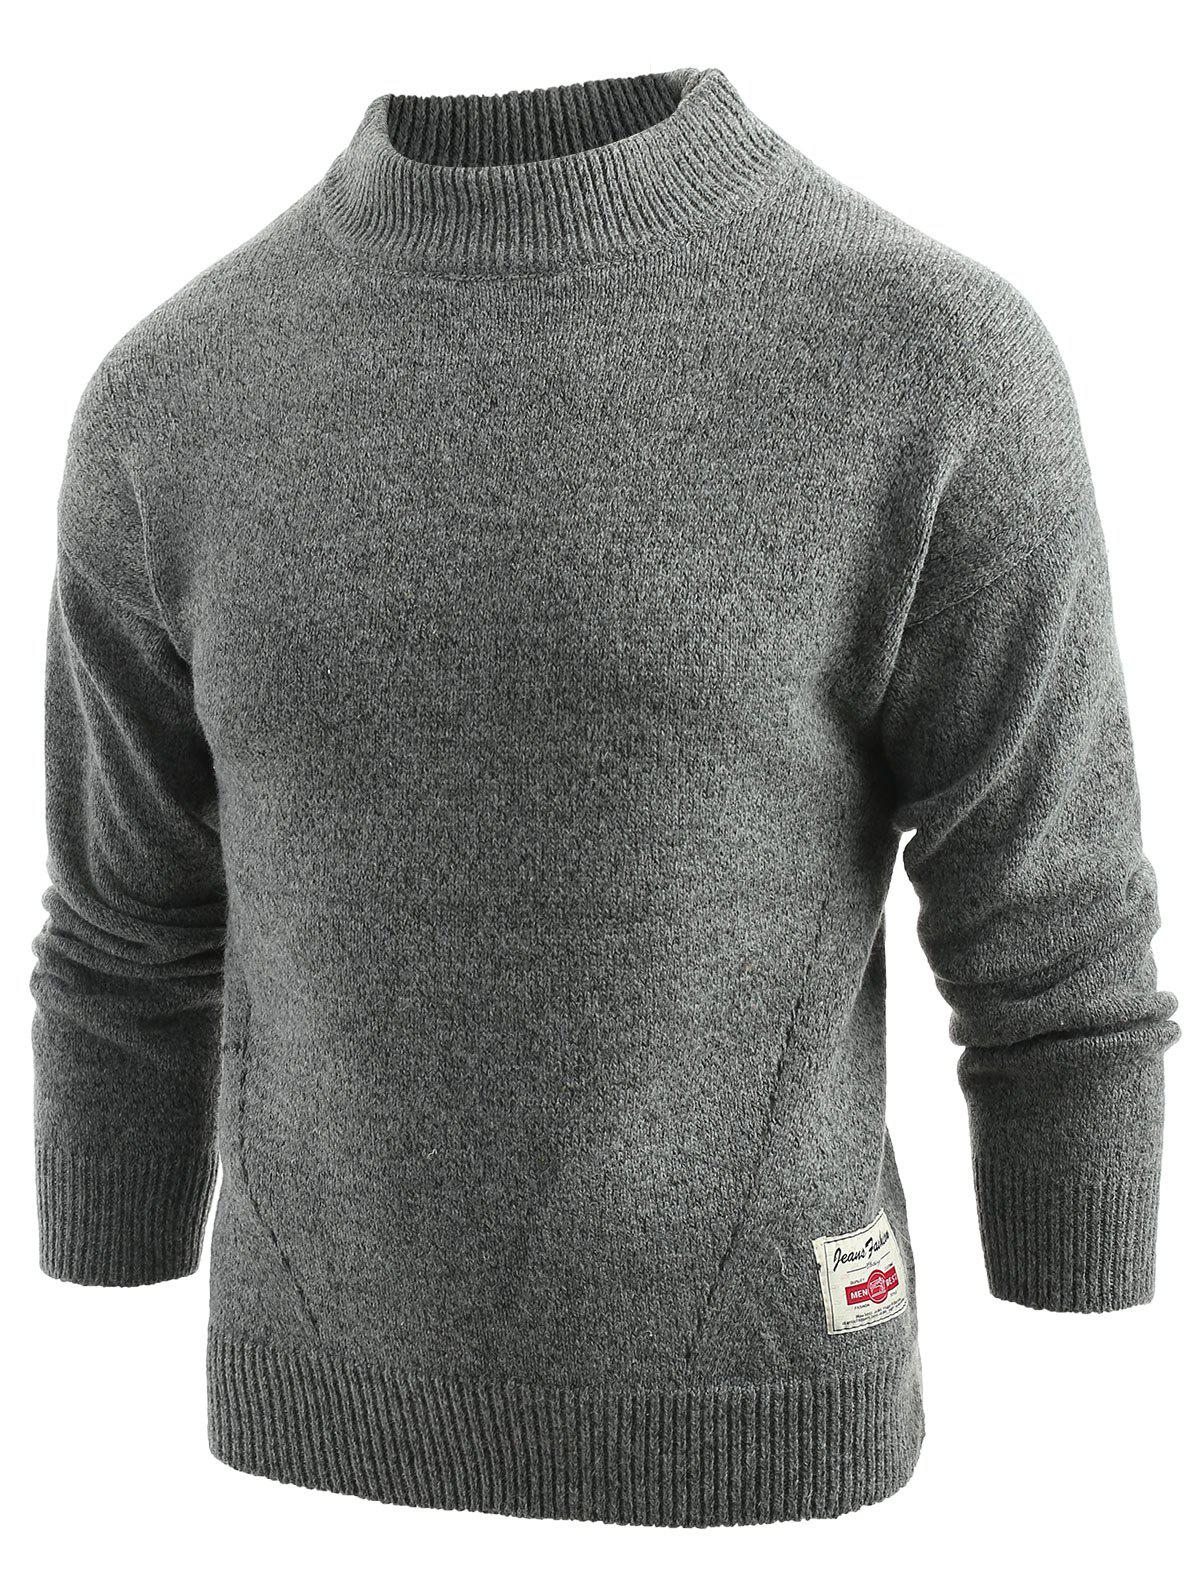 Long Sleeve Panel Pullover Sweater - DARK GRAY L